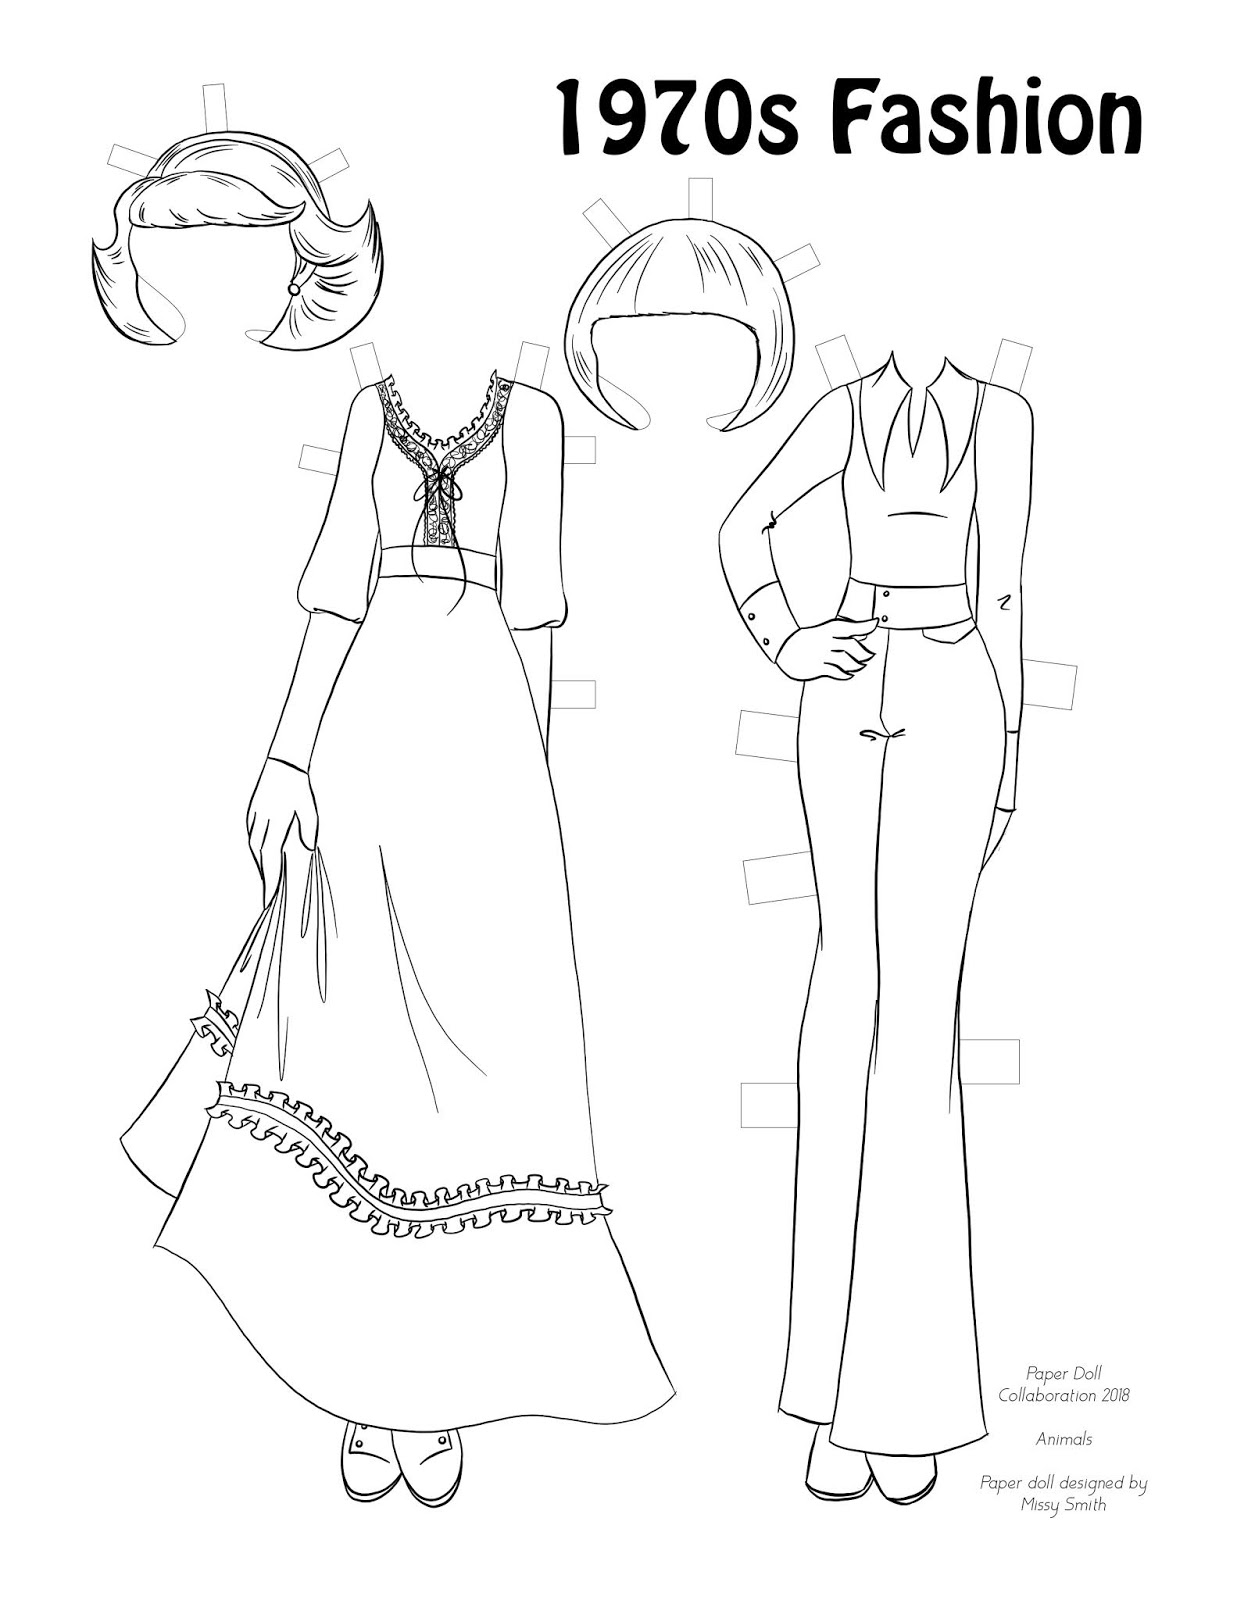 paper doll school august 2018 Me Decade 1970s i went in two directions here first up is a gunne sax inspired dress with feathered flipped up hair next a long collared shirt and wide leg pants with a